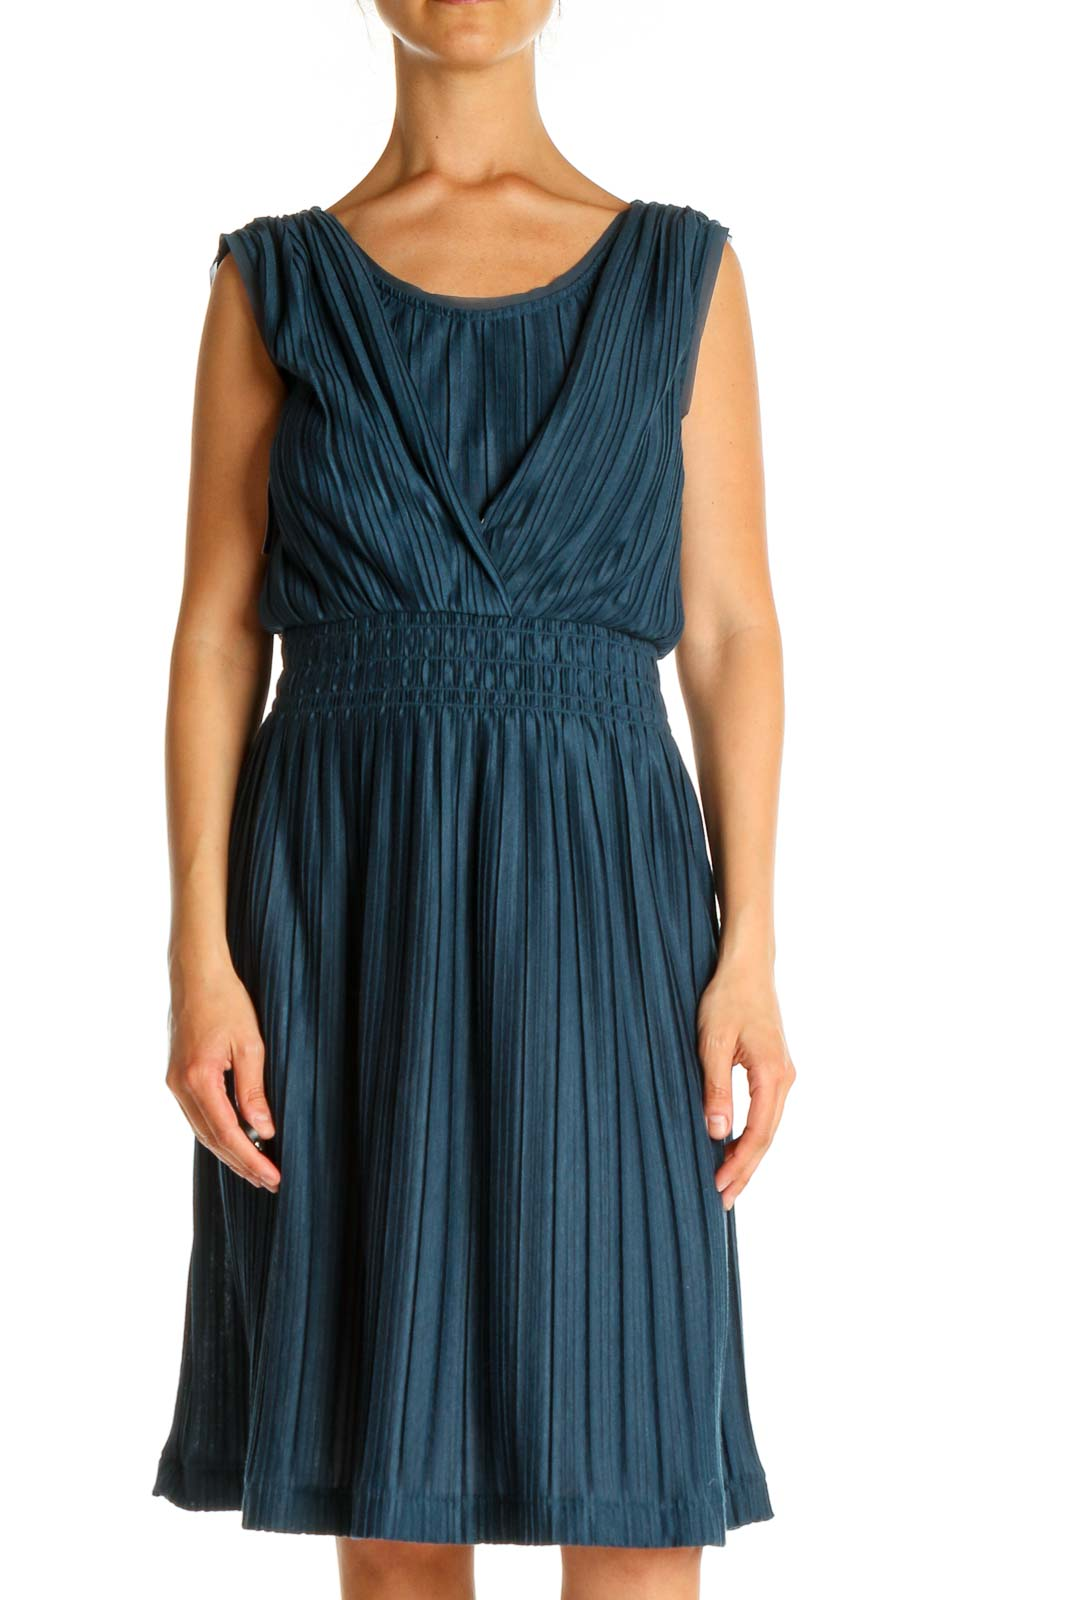 Blue Solid Classic Fit & Flare Dress Front